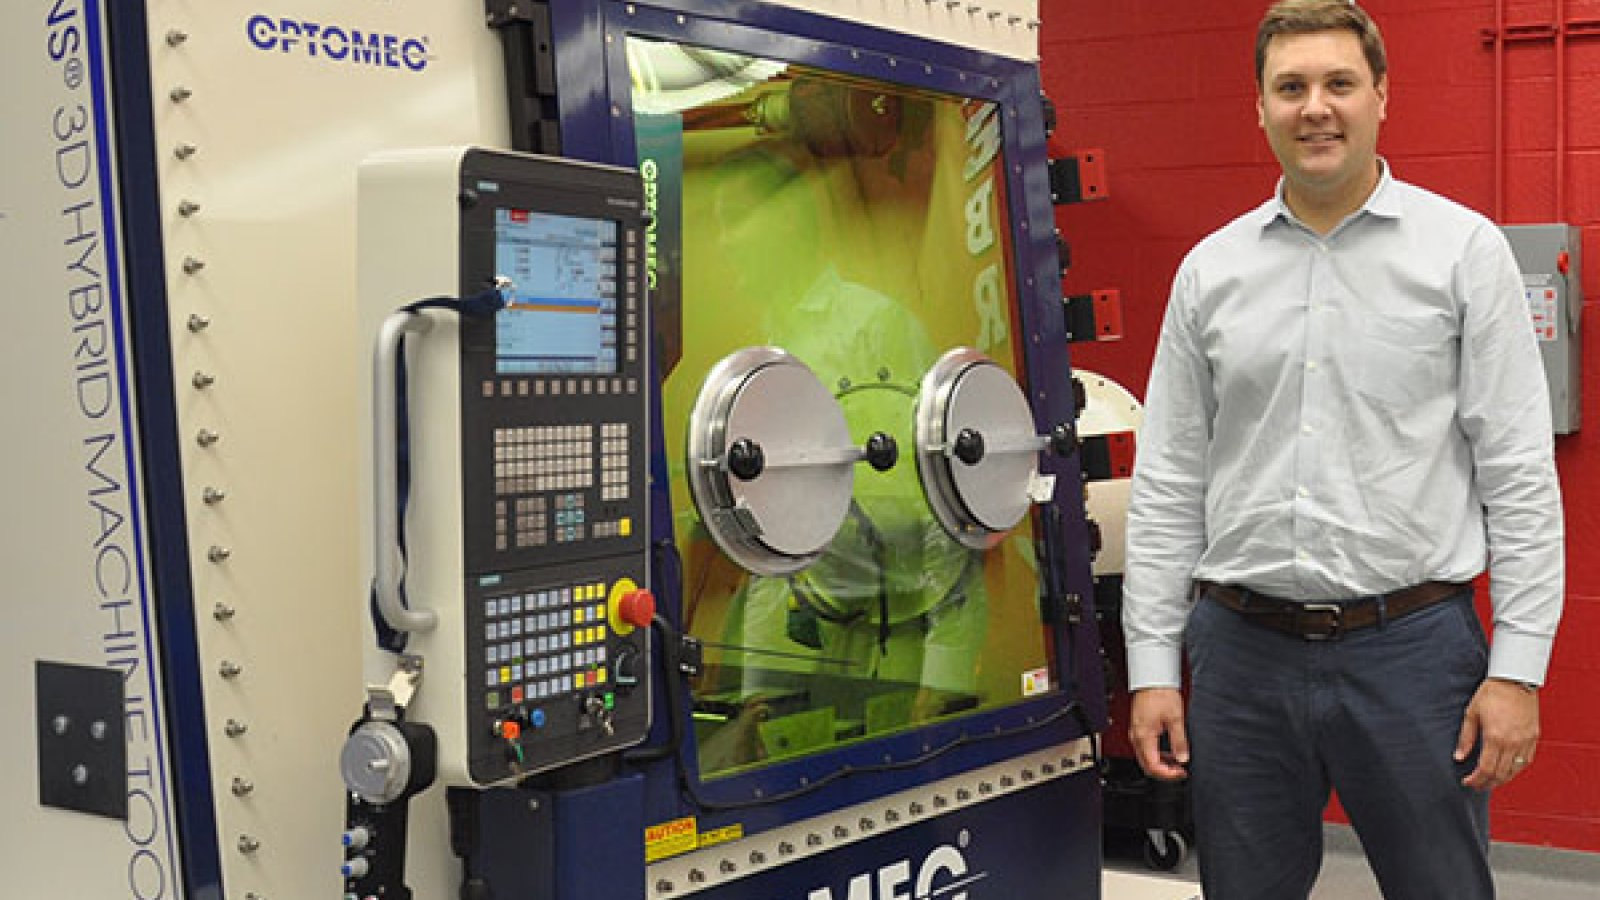 Michael Sealy, assistant professor of mechanical and materials engineering, and his team are using the Optomec LENS 3D hybrid printer in the NEAT Labs to develop a process for manufacturing customized, dissolvable magnesium surgical implants.